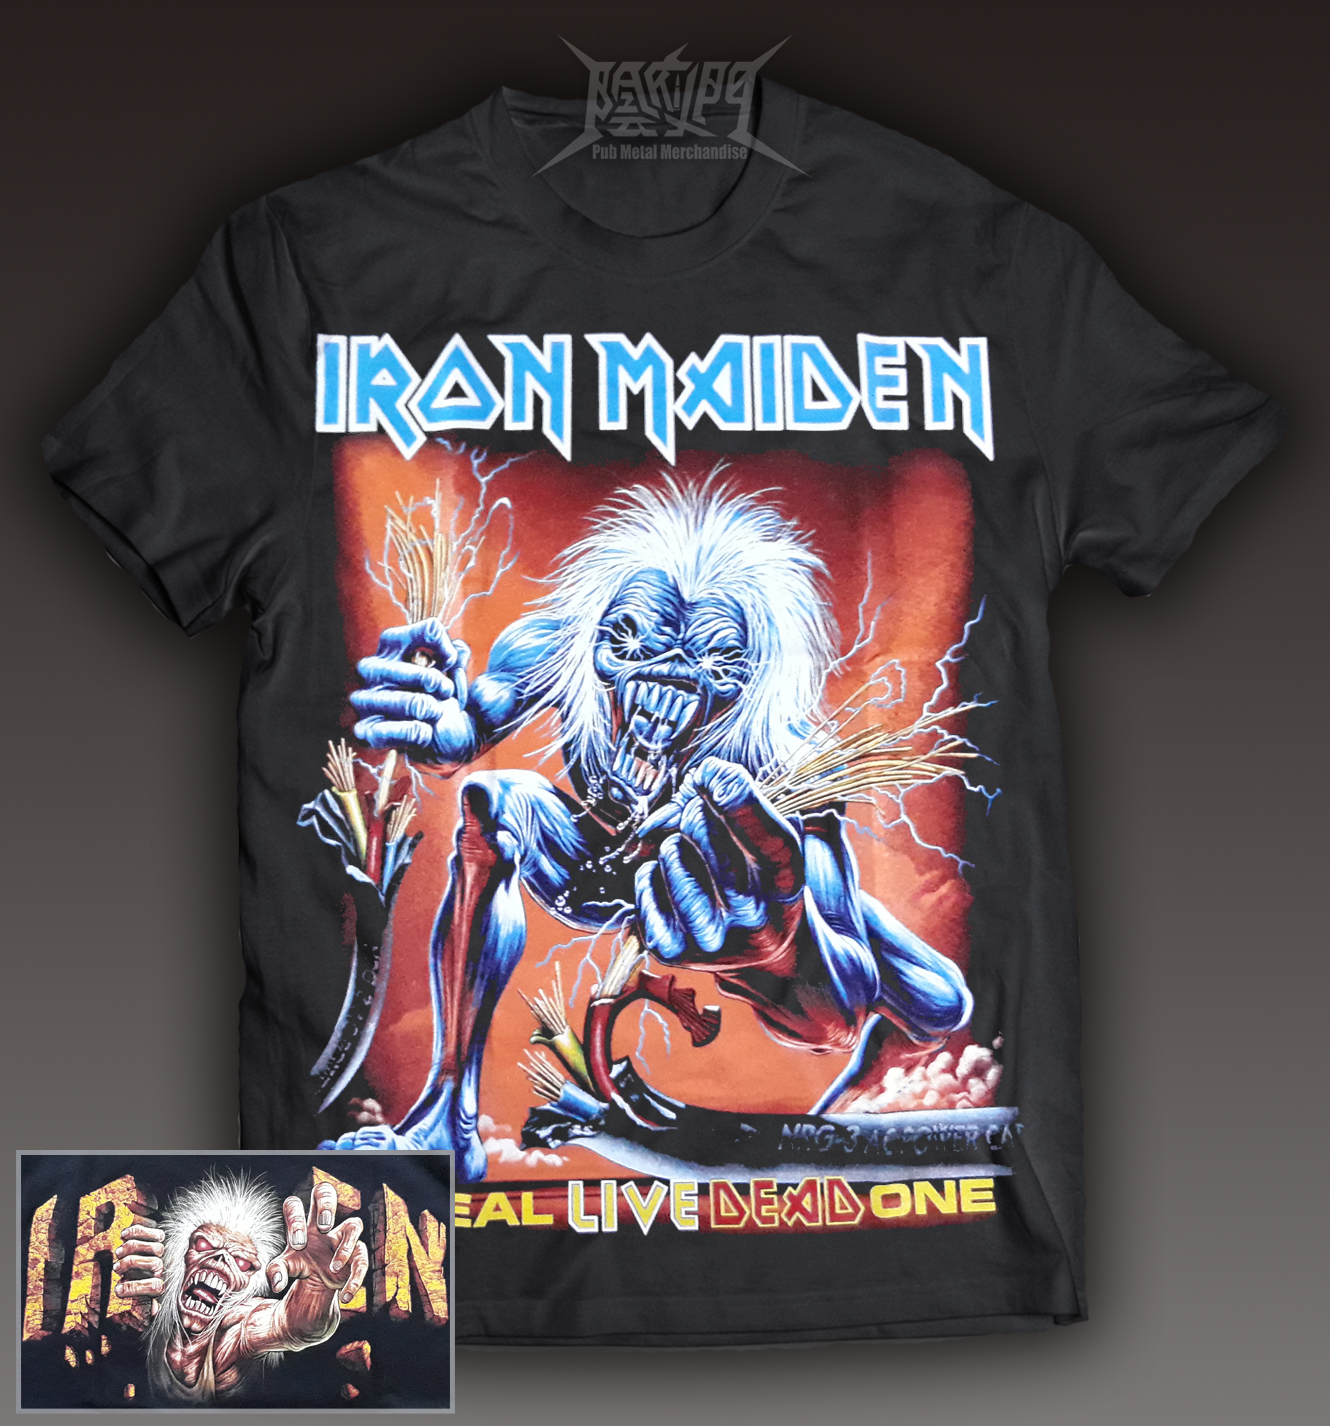 Iron maiden-A real live dead.jpg